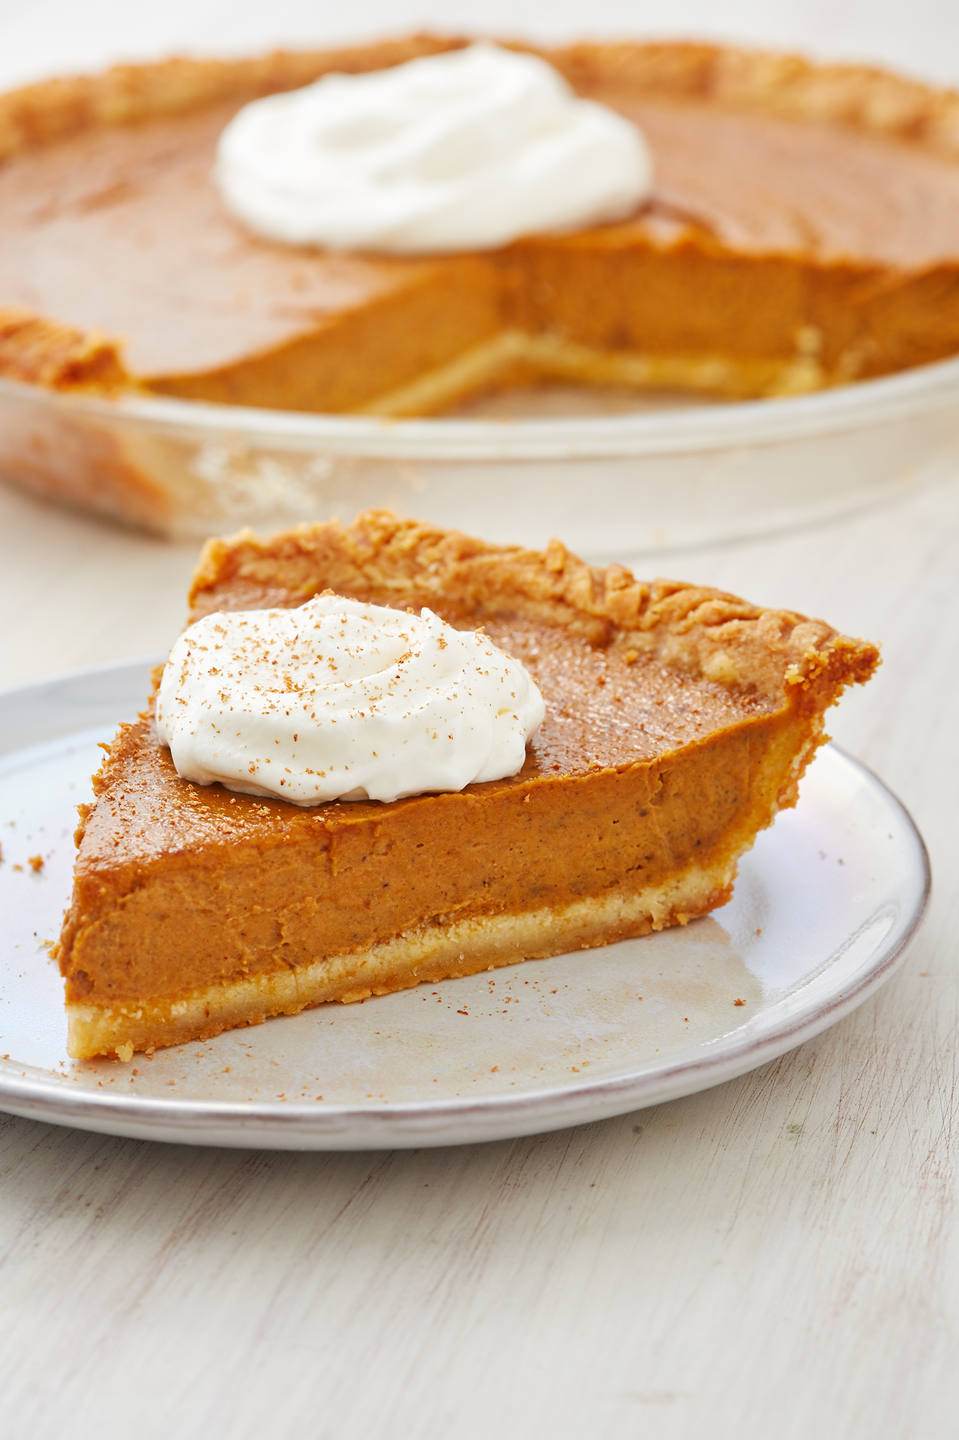 "<p>Low-carb doesn't have to mean low-quality. Just sayin'. </p><p>Get the recipe from <a href=""https://www.delish.com/holiday-recipes/thanksgiving/a28495185/keto-pumpkin-pie-recipe/"" rel=""nofollow noopener"" target=""_blank"" data-ylk=""slk:Delish"" class=""link rapid-noclick-resp"">Delish</a>. </p>"